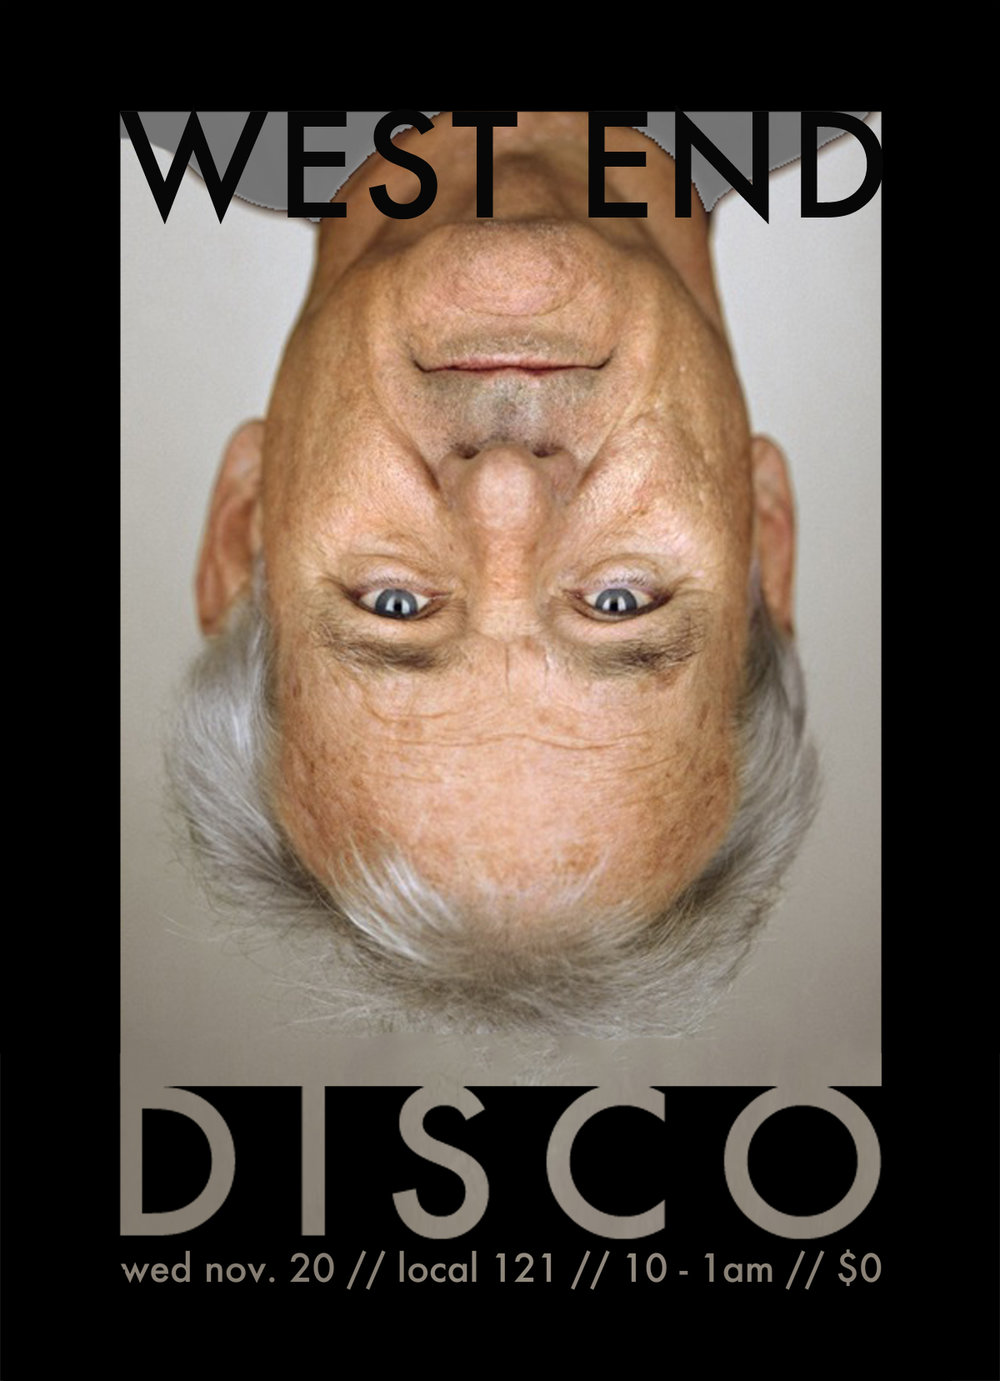 West End Disco 4.jpg